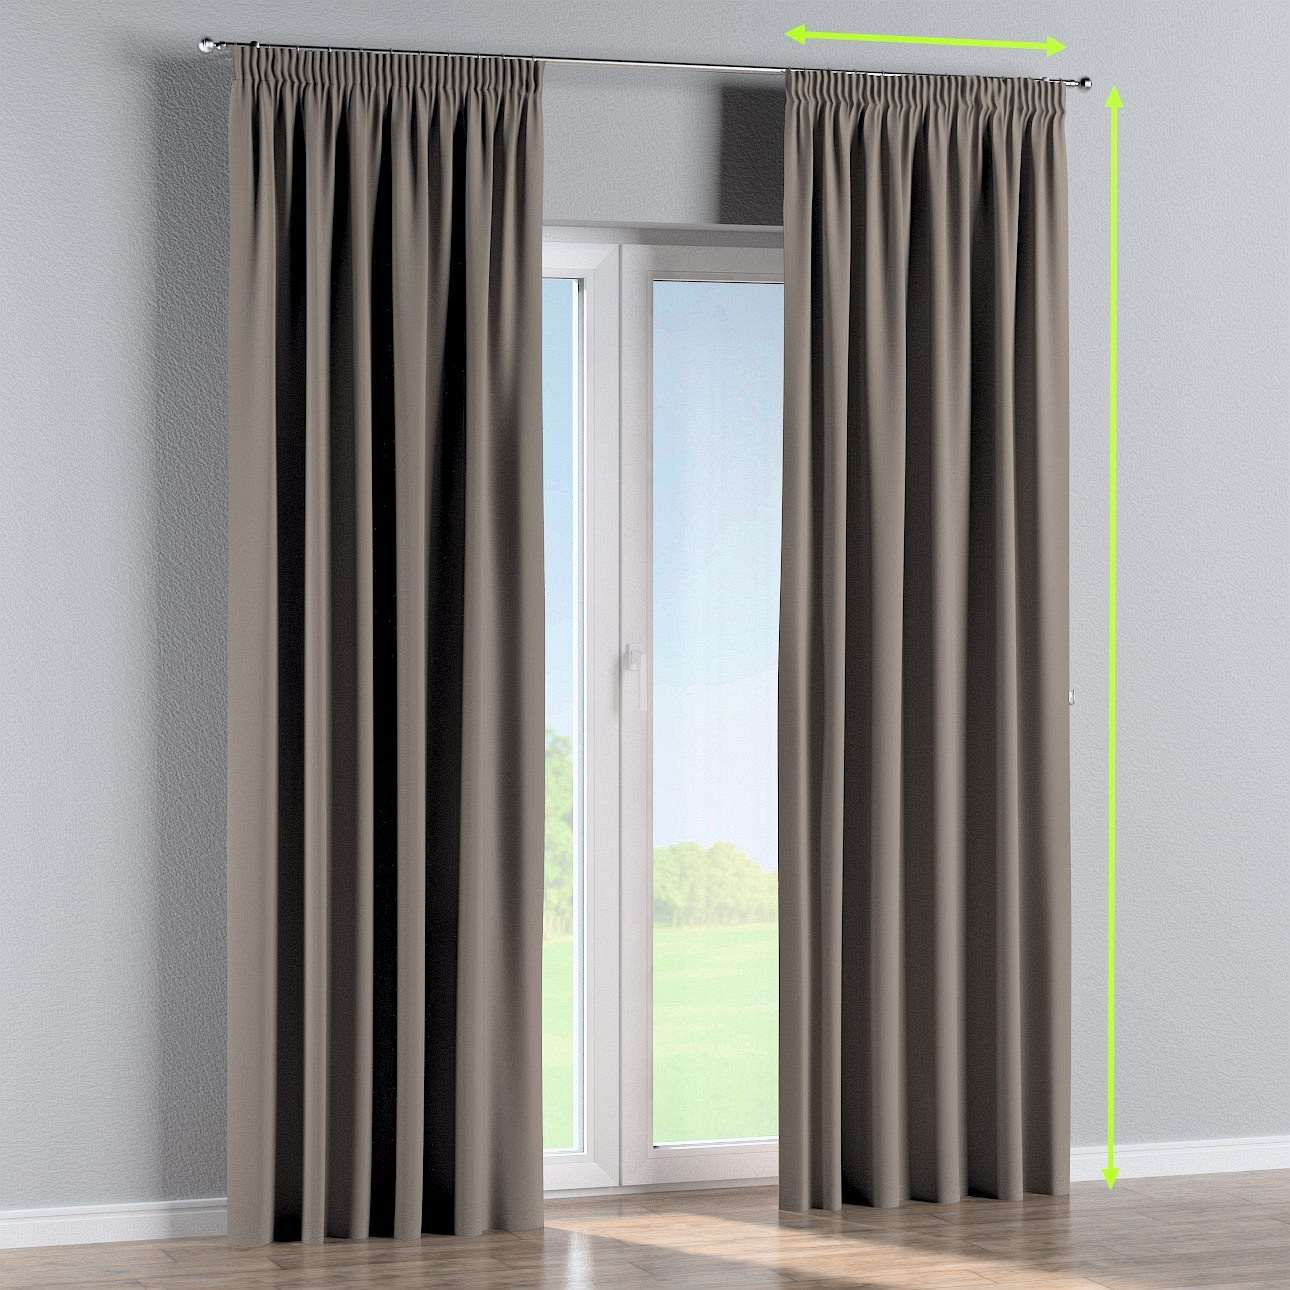 Pencil pleat curtain in collection Blackout, fabric: 269-81